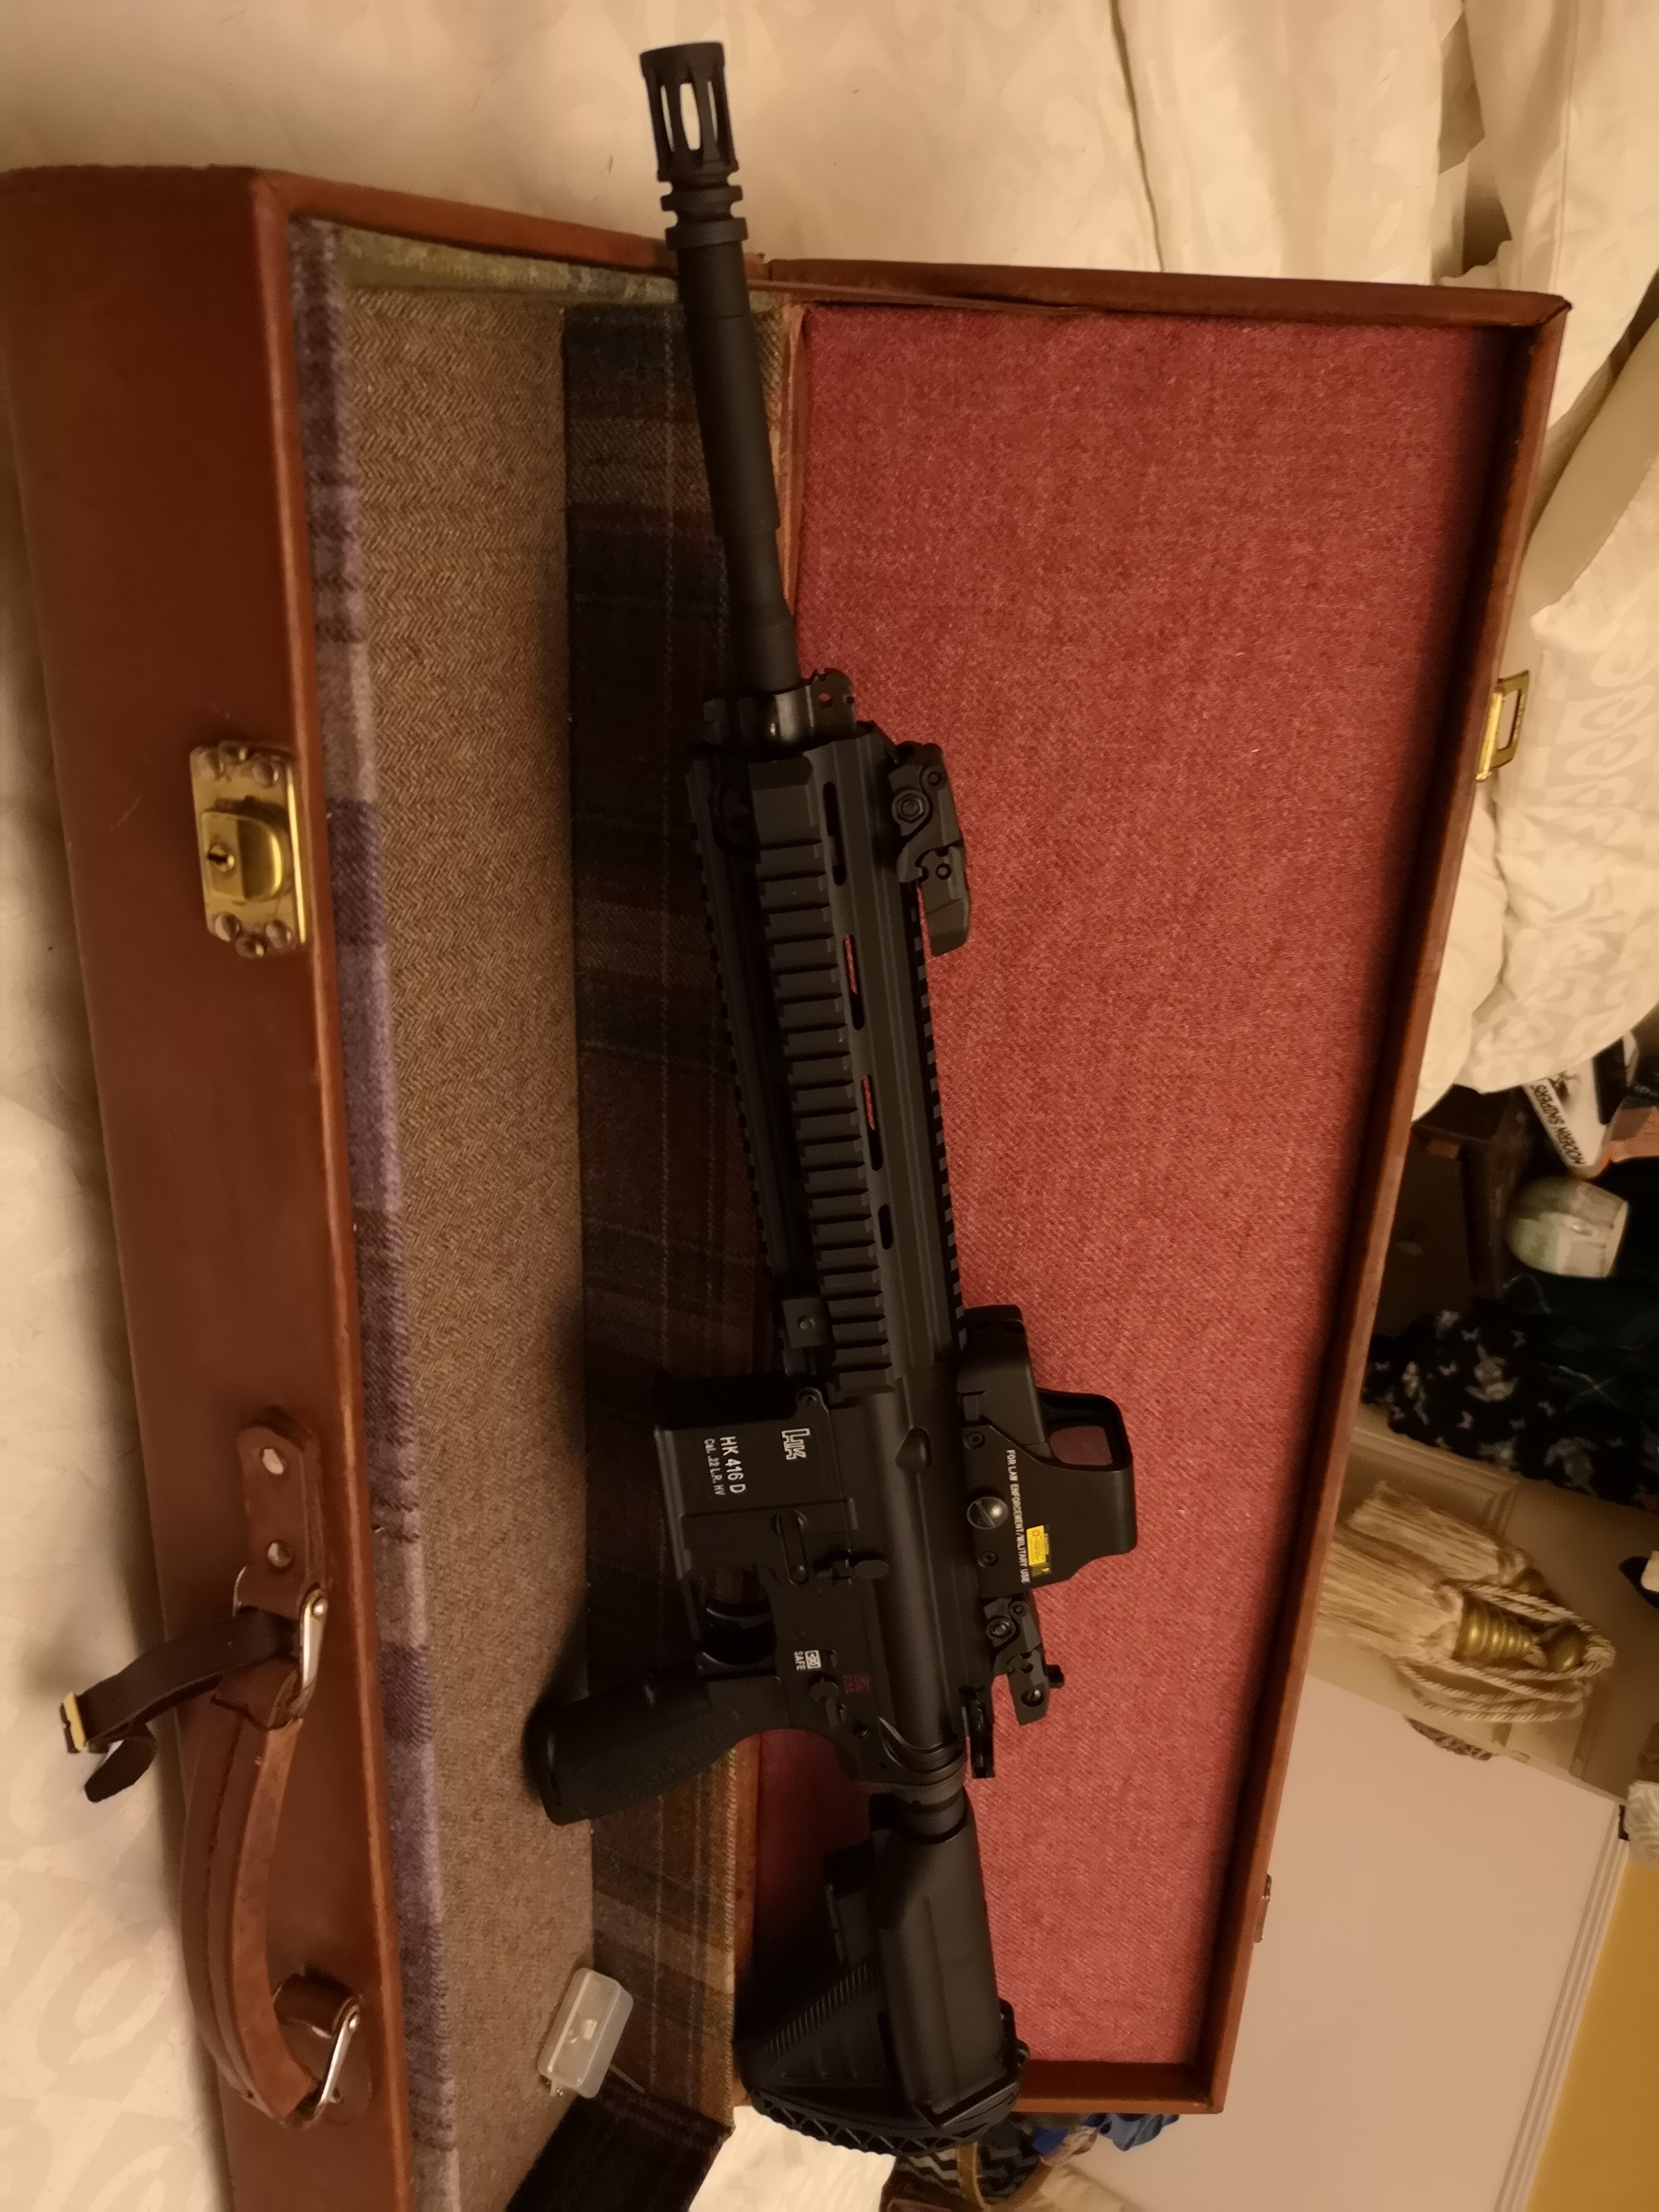 HK416 Owners Picture Thread (genuine HK416's only please)-img_20190102_113933_1546432059243.jpg